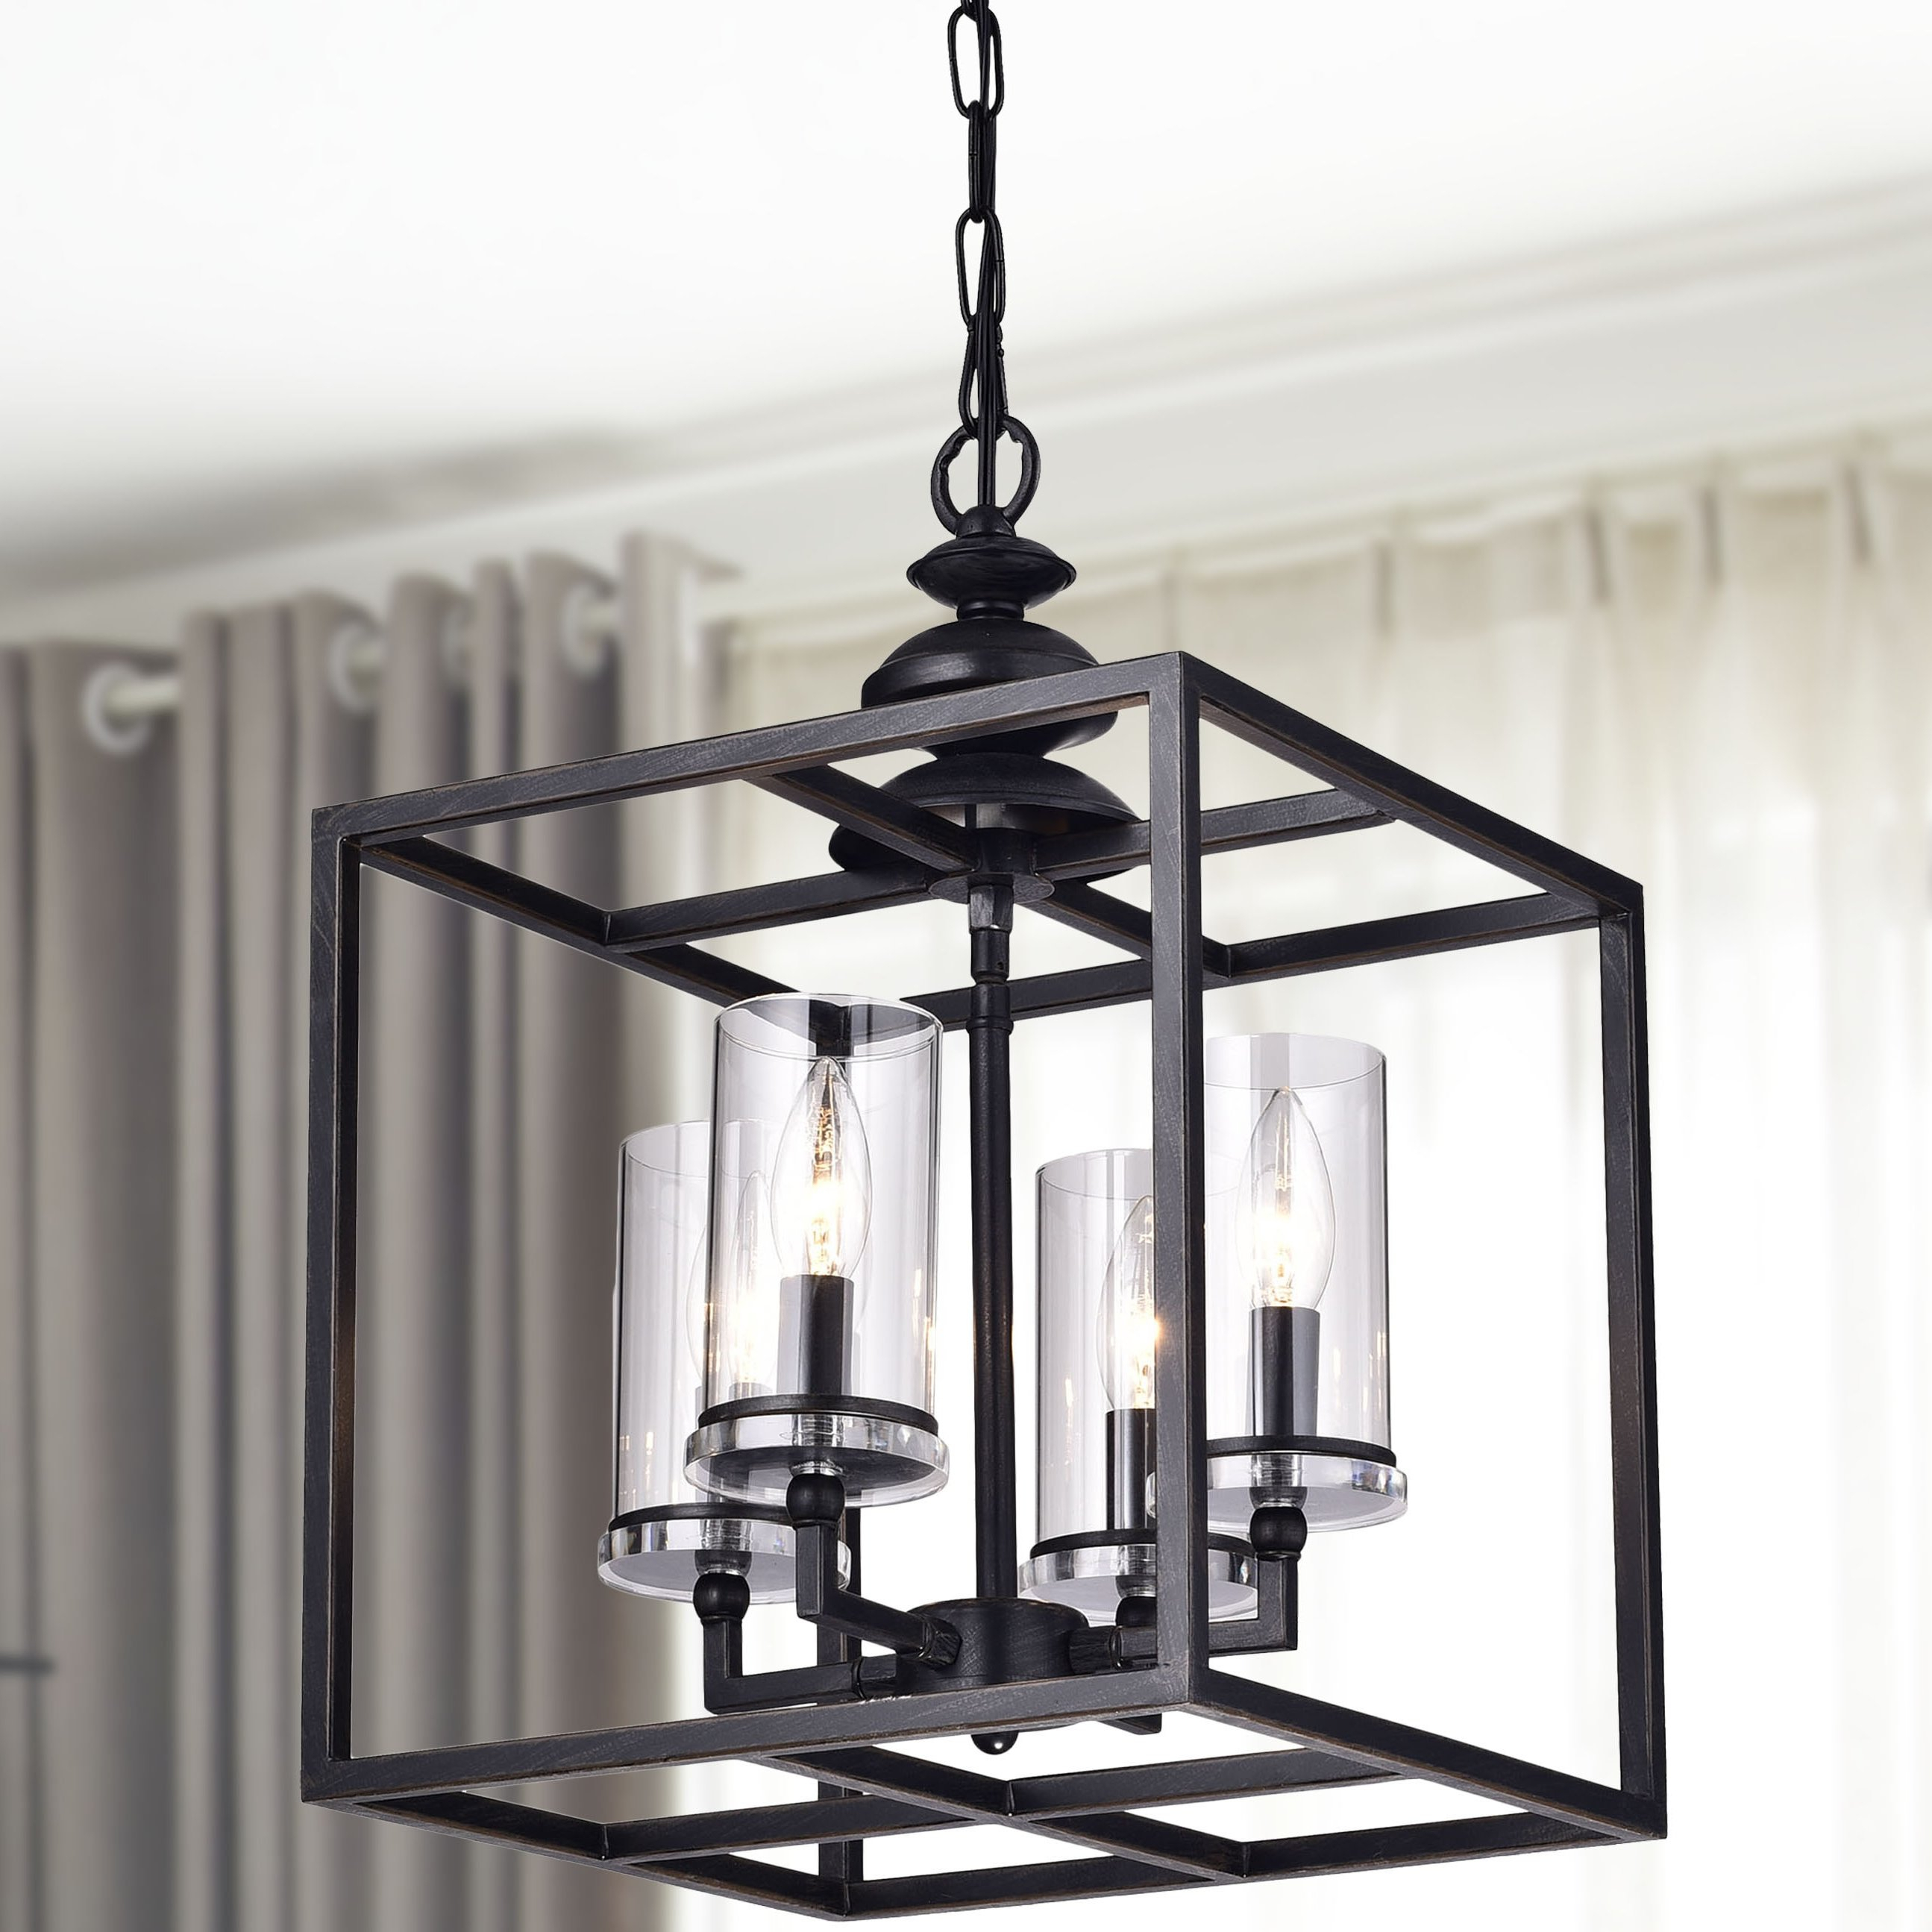 Didmarton 4 Light Square/rectangle Chandelier Pertaining To Ellenton 4 Light Rectangle Chandeliers (View 5 of 30)